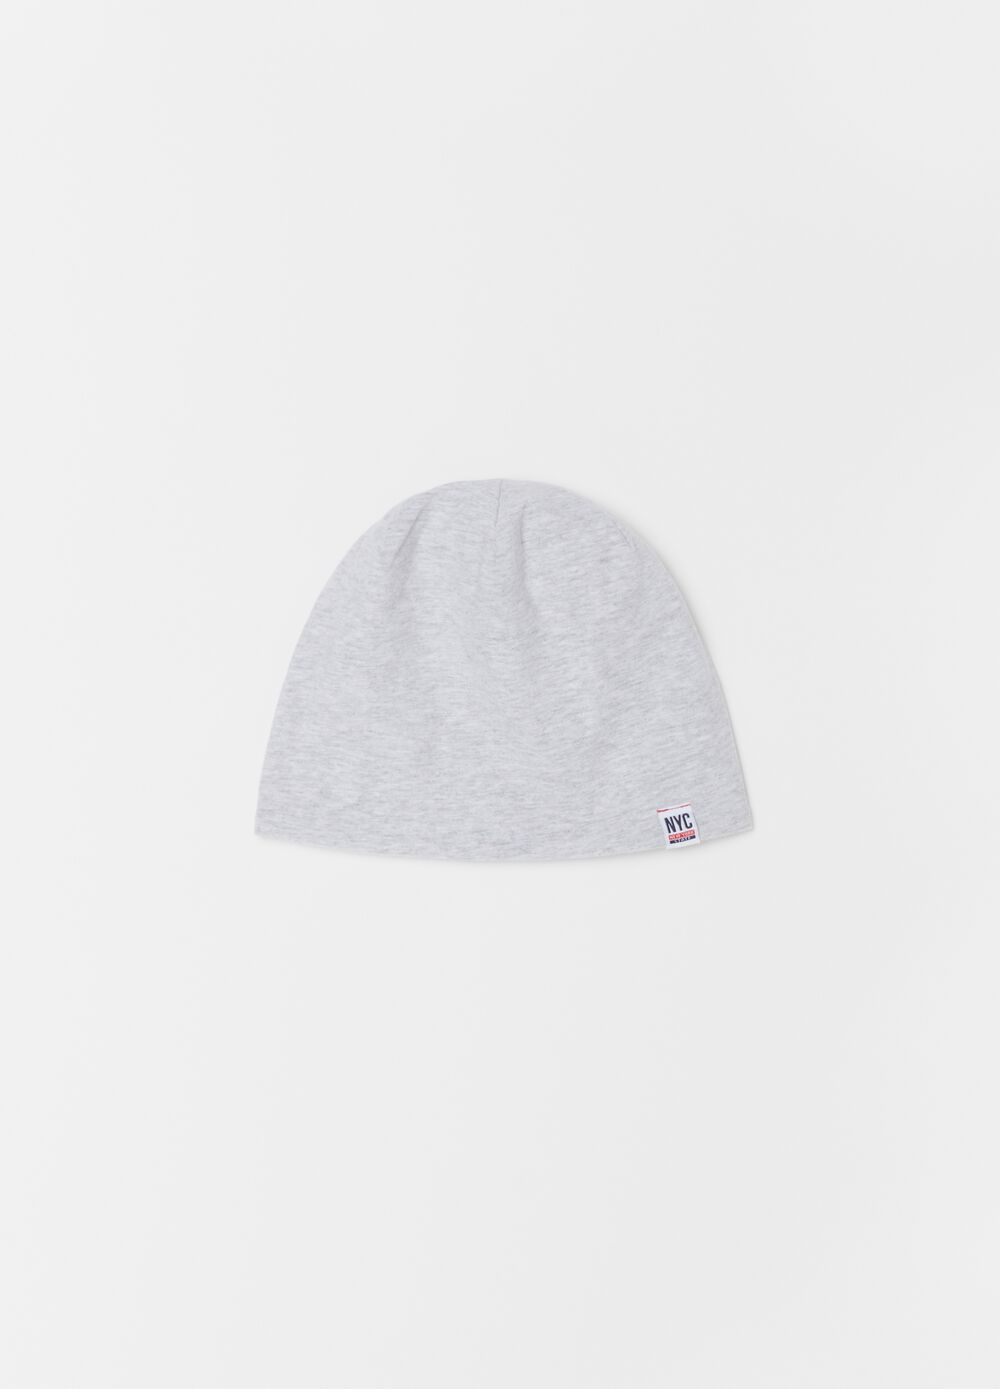 Stretch organic cotton jersey hat.